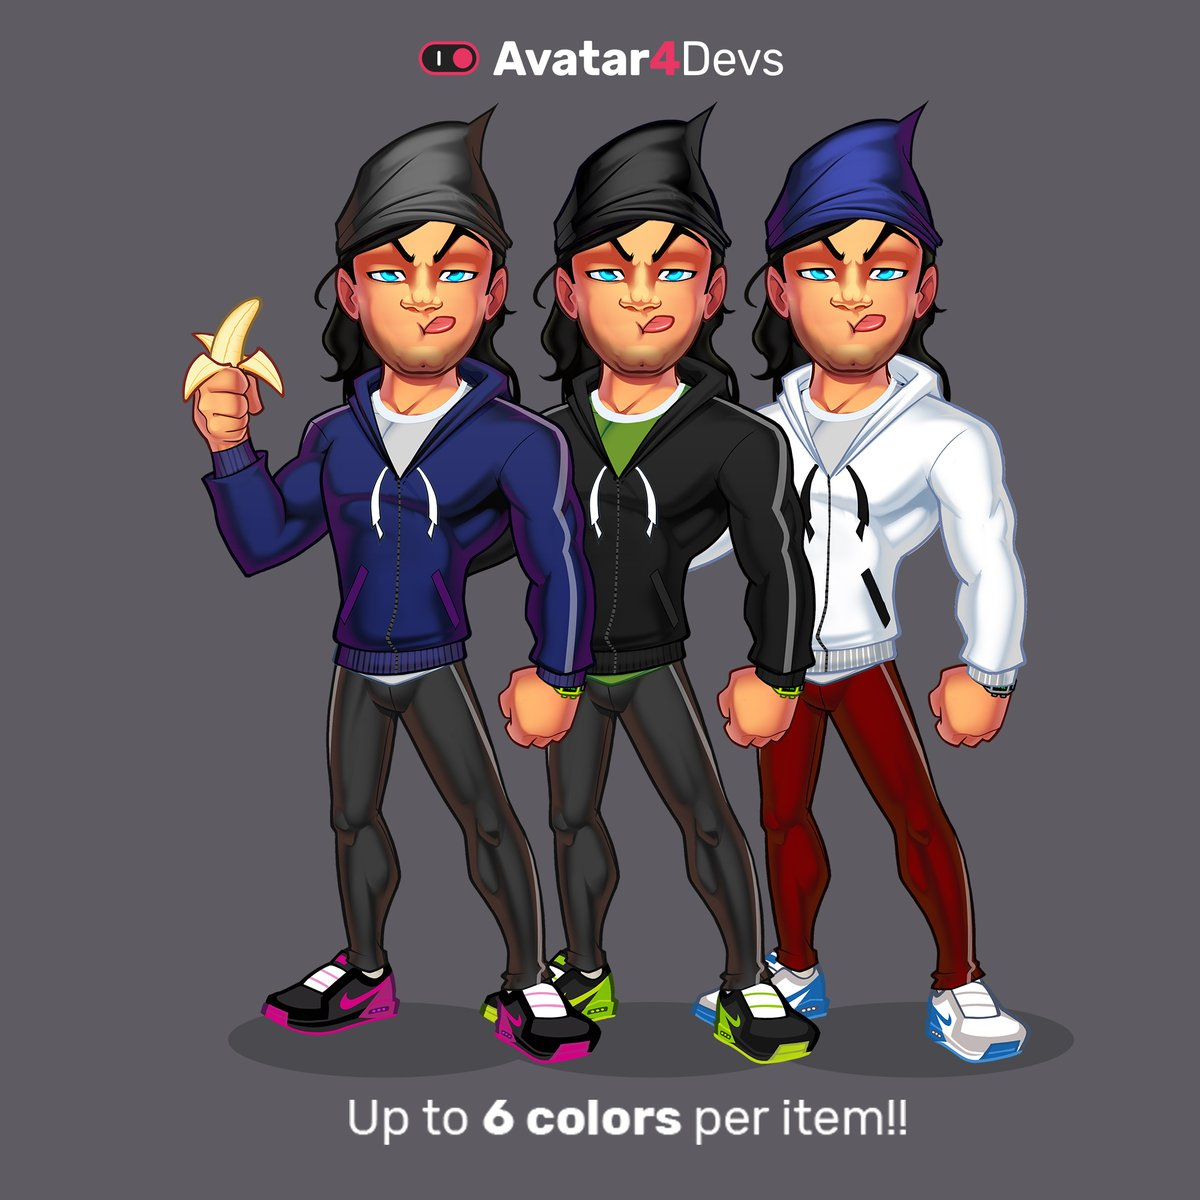 Available at http://www.avatar4devs.com  #developer #webdeveloper #developers #softwaredeveloper #developerlife #frontenddeveloper #appdeveloper #gamedeveloper #webdevelopers #fullstackdeveloper #androiddeveloper pic.twitter.com/JN1asw7WOS